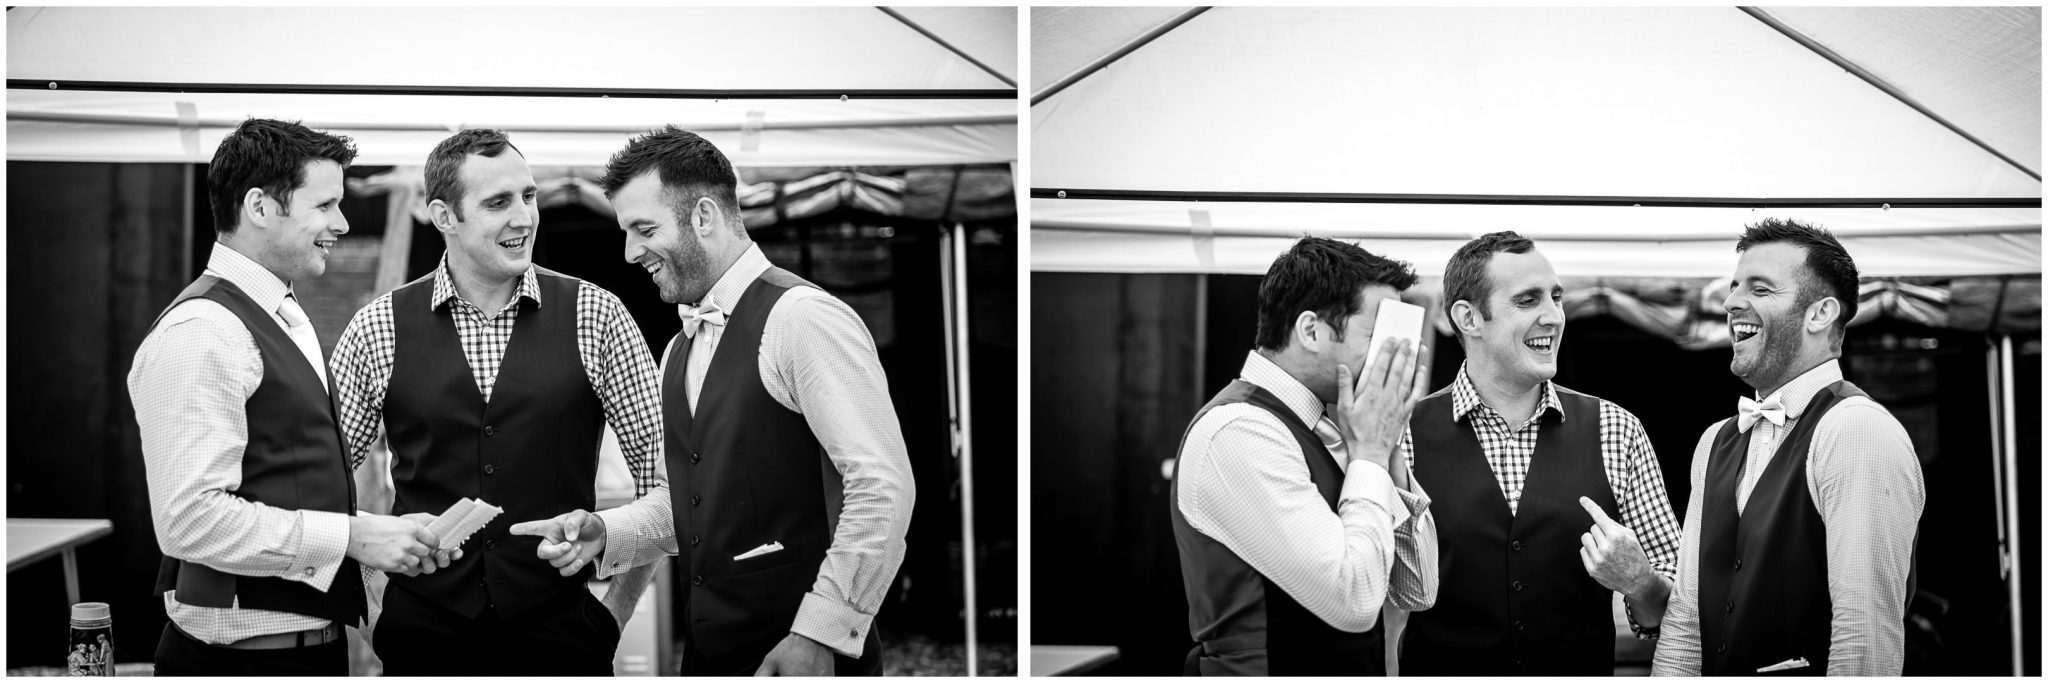 Winchester Great Hall wedding photography groomsmen prepare for speech